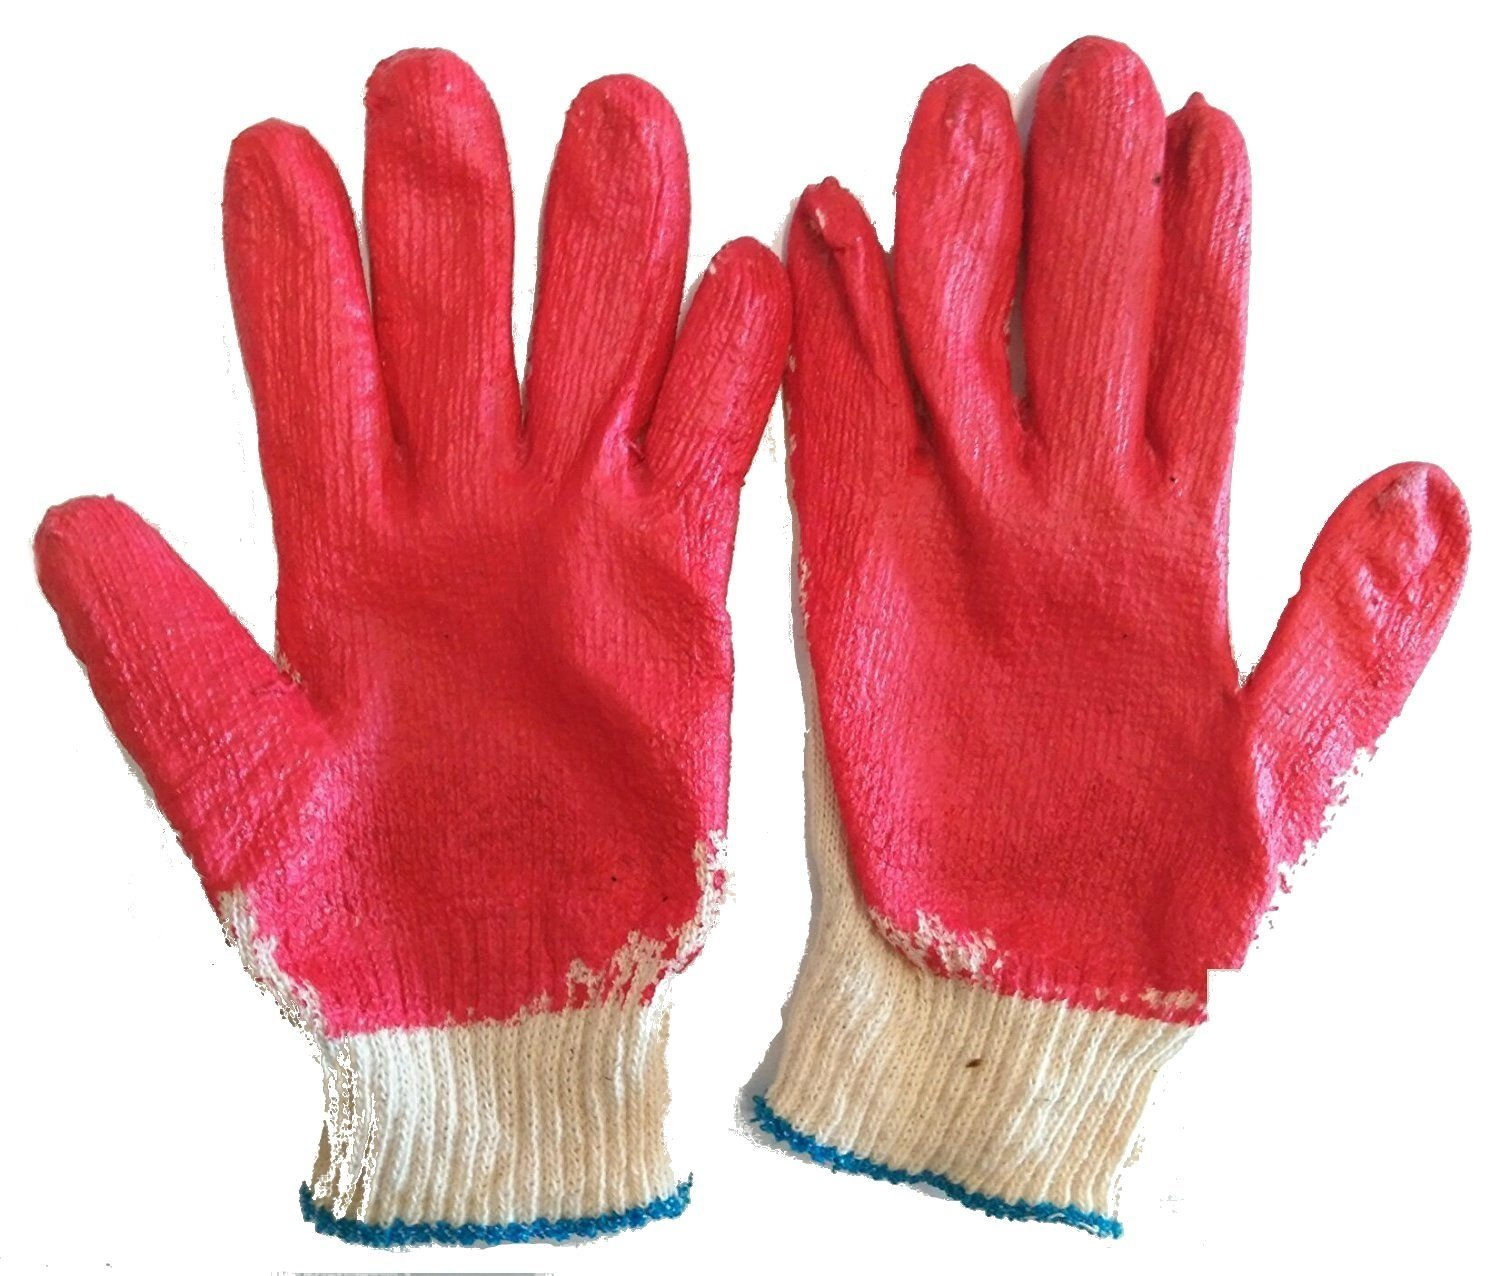 100 Pairs Red Latex Rubber Palm Coated Work Safety Gloves made in Korea by ChulSan  B01EBBQ9BM